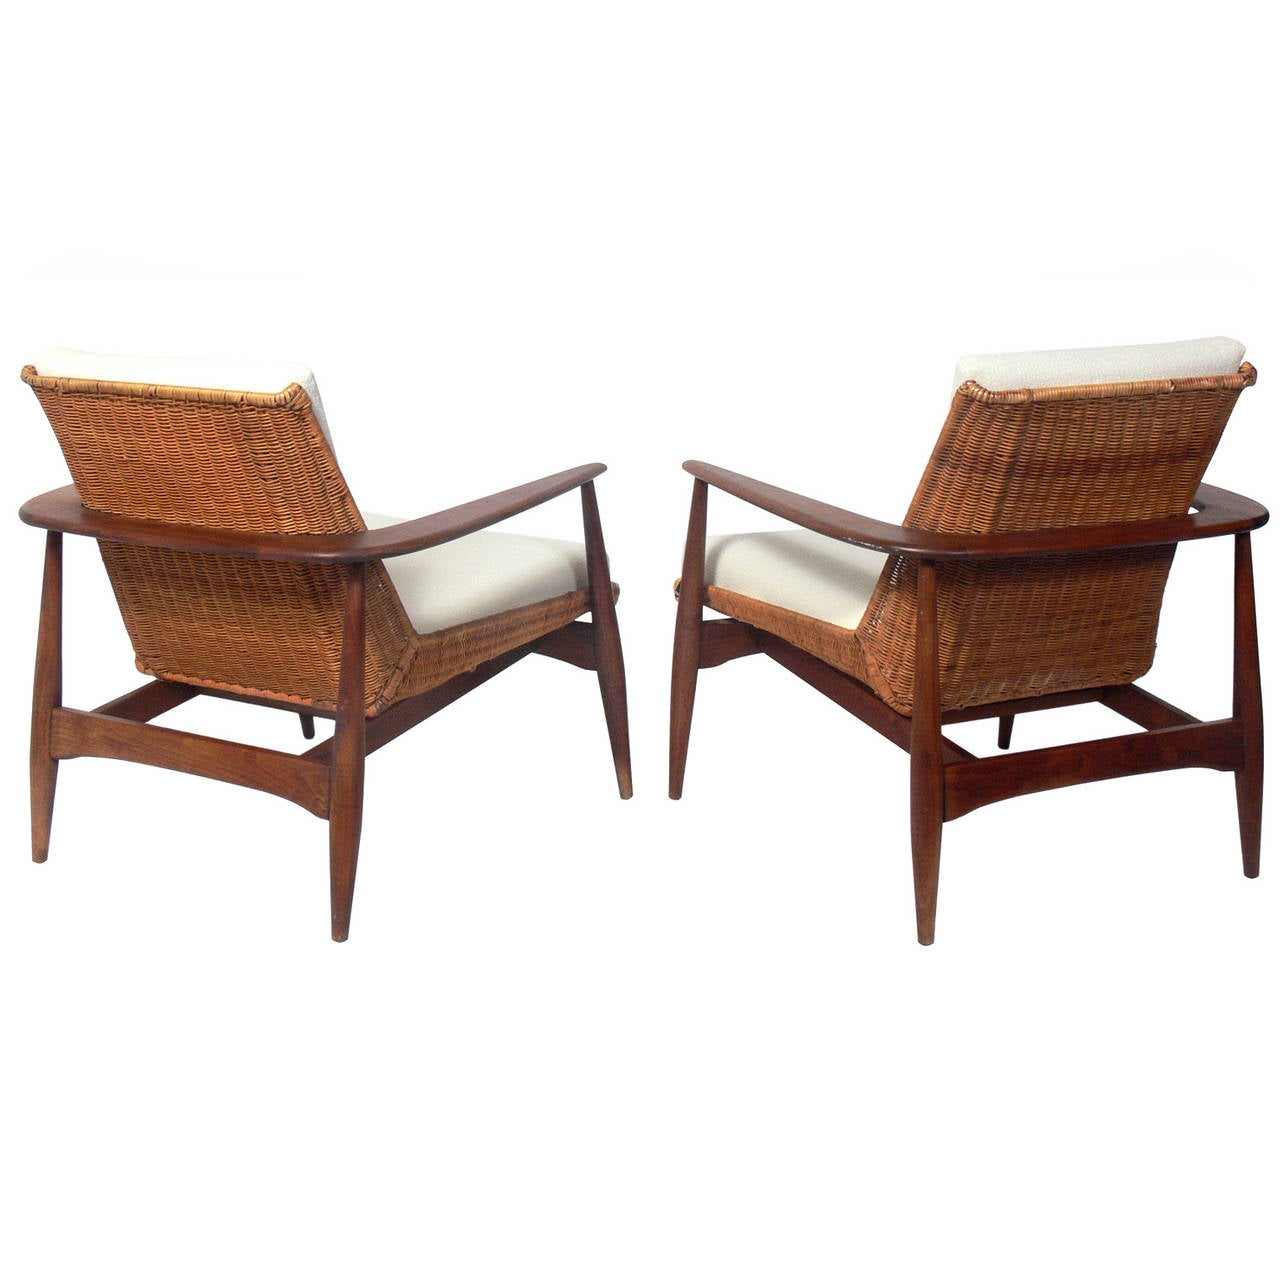 Pair of danish modern lounge chairs by lawrence peabody at for Modern lounge furniture